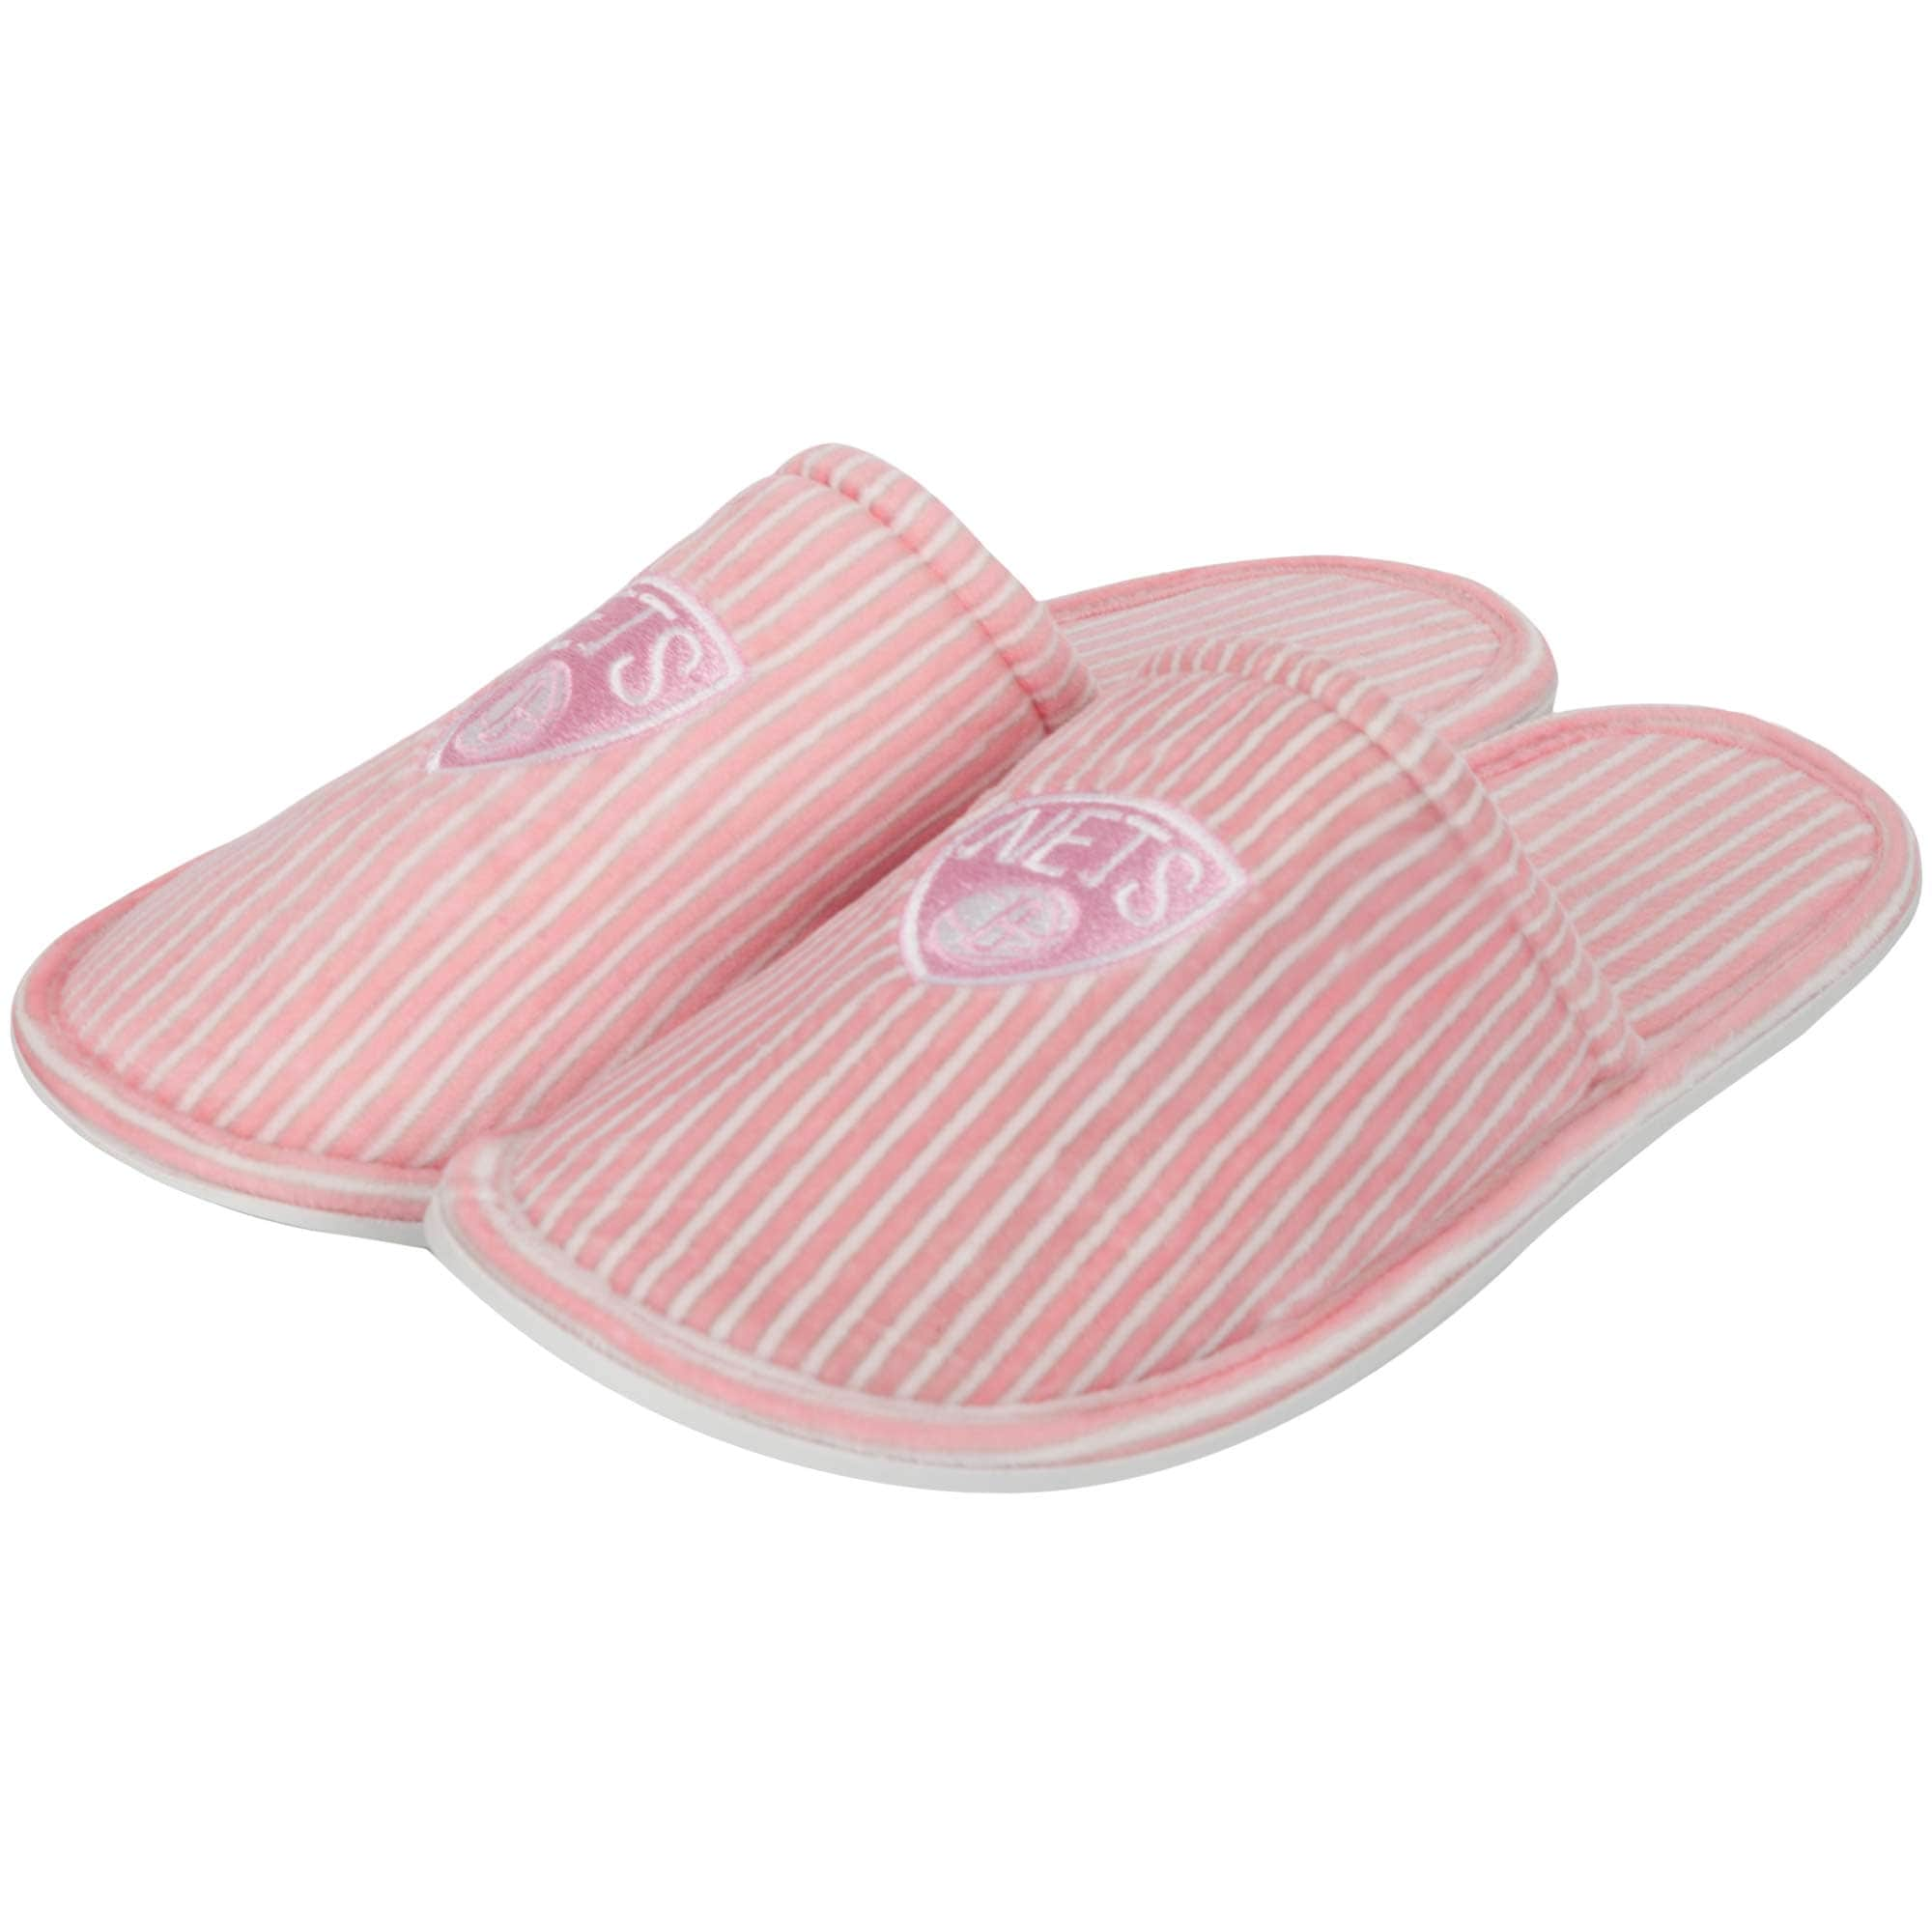 Brooklyn Nets Women's Slide Slipper - Pink